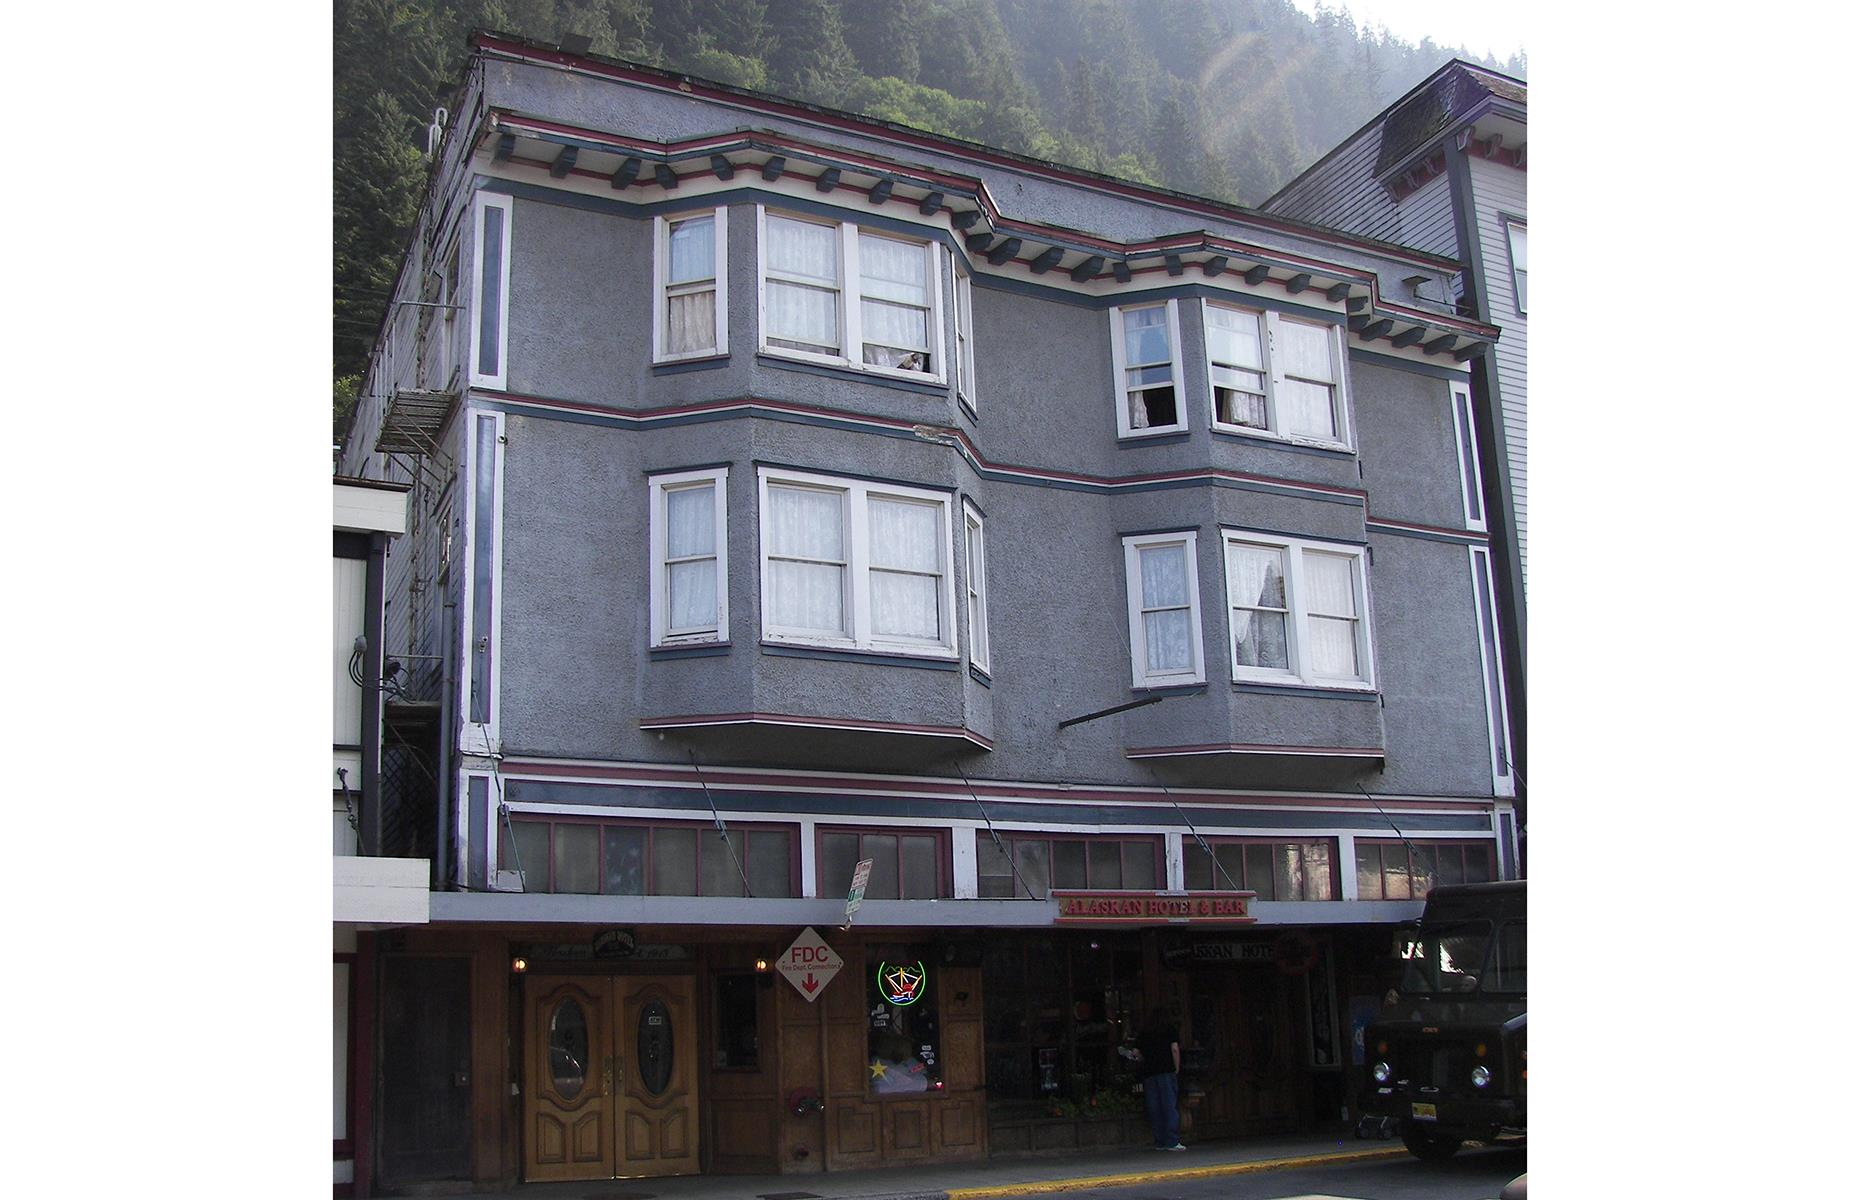 Slide 3 of 51: Opened in 1913, Juneau's Alaskan Hotel has a serious reputation for ghosts and ghouls. So much so that staff report regular encounters with the paranormal and it was also featured on Travel Channel's series Portals to Hell. The most haunted spot (Room 315, which some guests specifically request) is said to be the room of a gold miner's wife who lived here waiting for her husband to come back. When at first he didn't, she became a working girl to support herself – and when her husband did eventually return, he wasn't best pleased with his wife's new career. Legend has it he killed her and she never left.